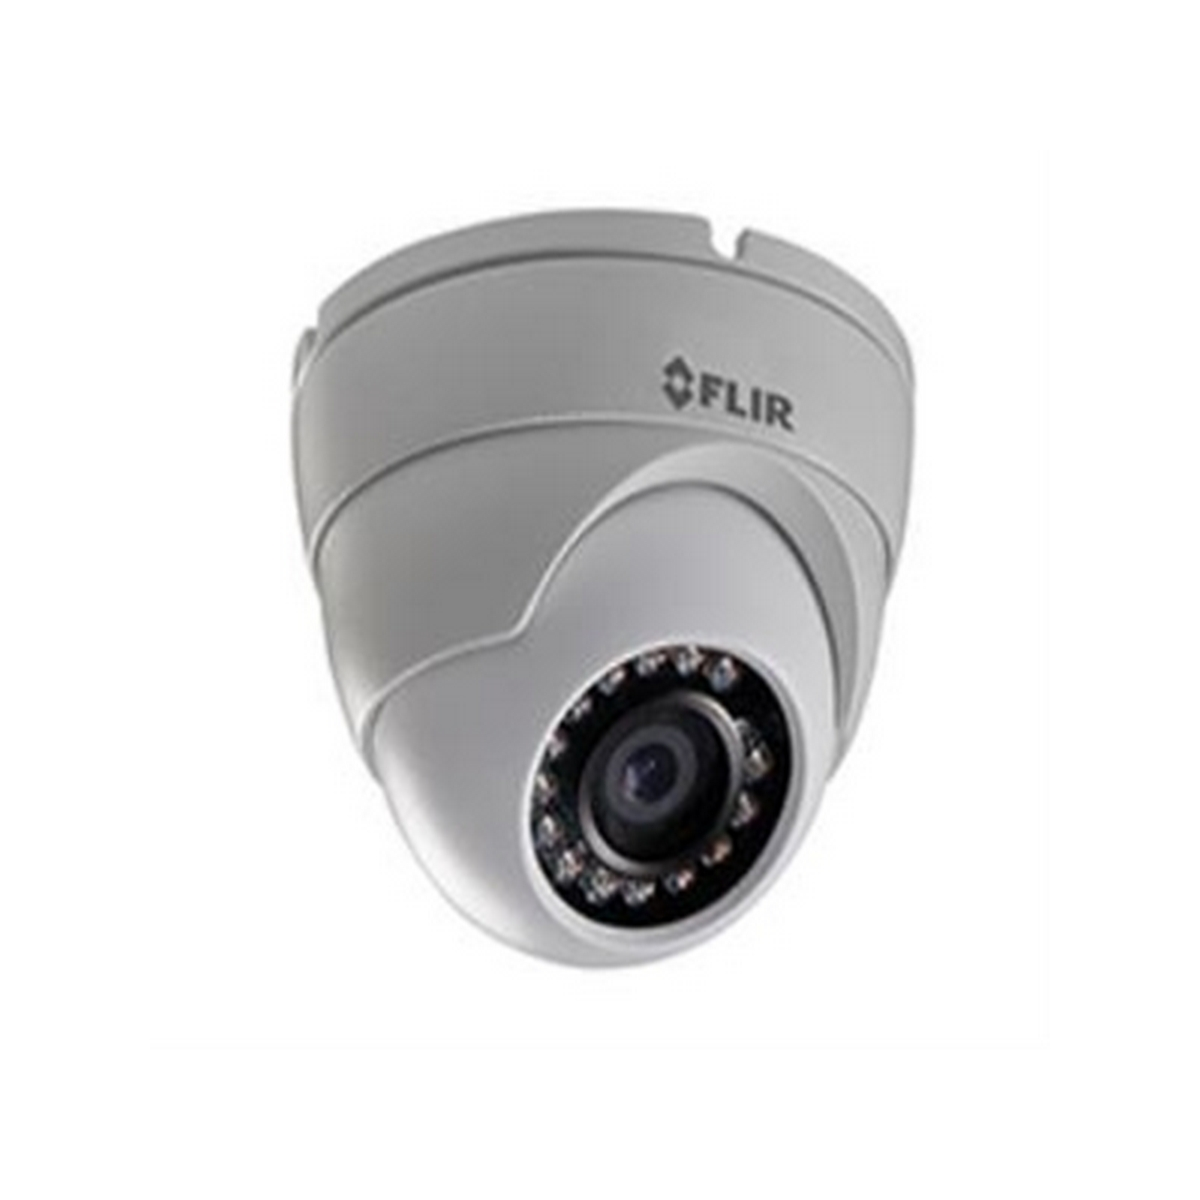 2.1MP HD Fixed Dome MPX camera, 3.6MM Lens, IR, IP66, 12VDC